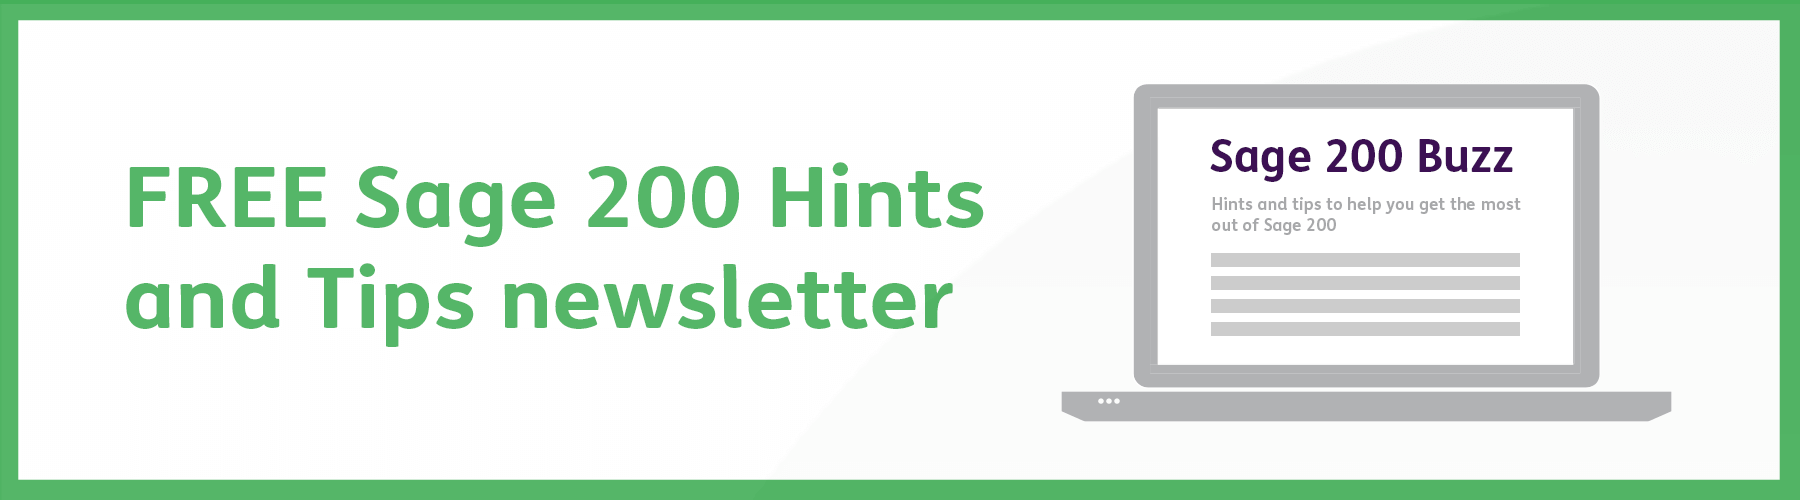 Free sage 200 hints and tips newsletter